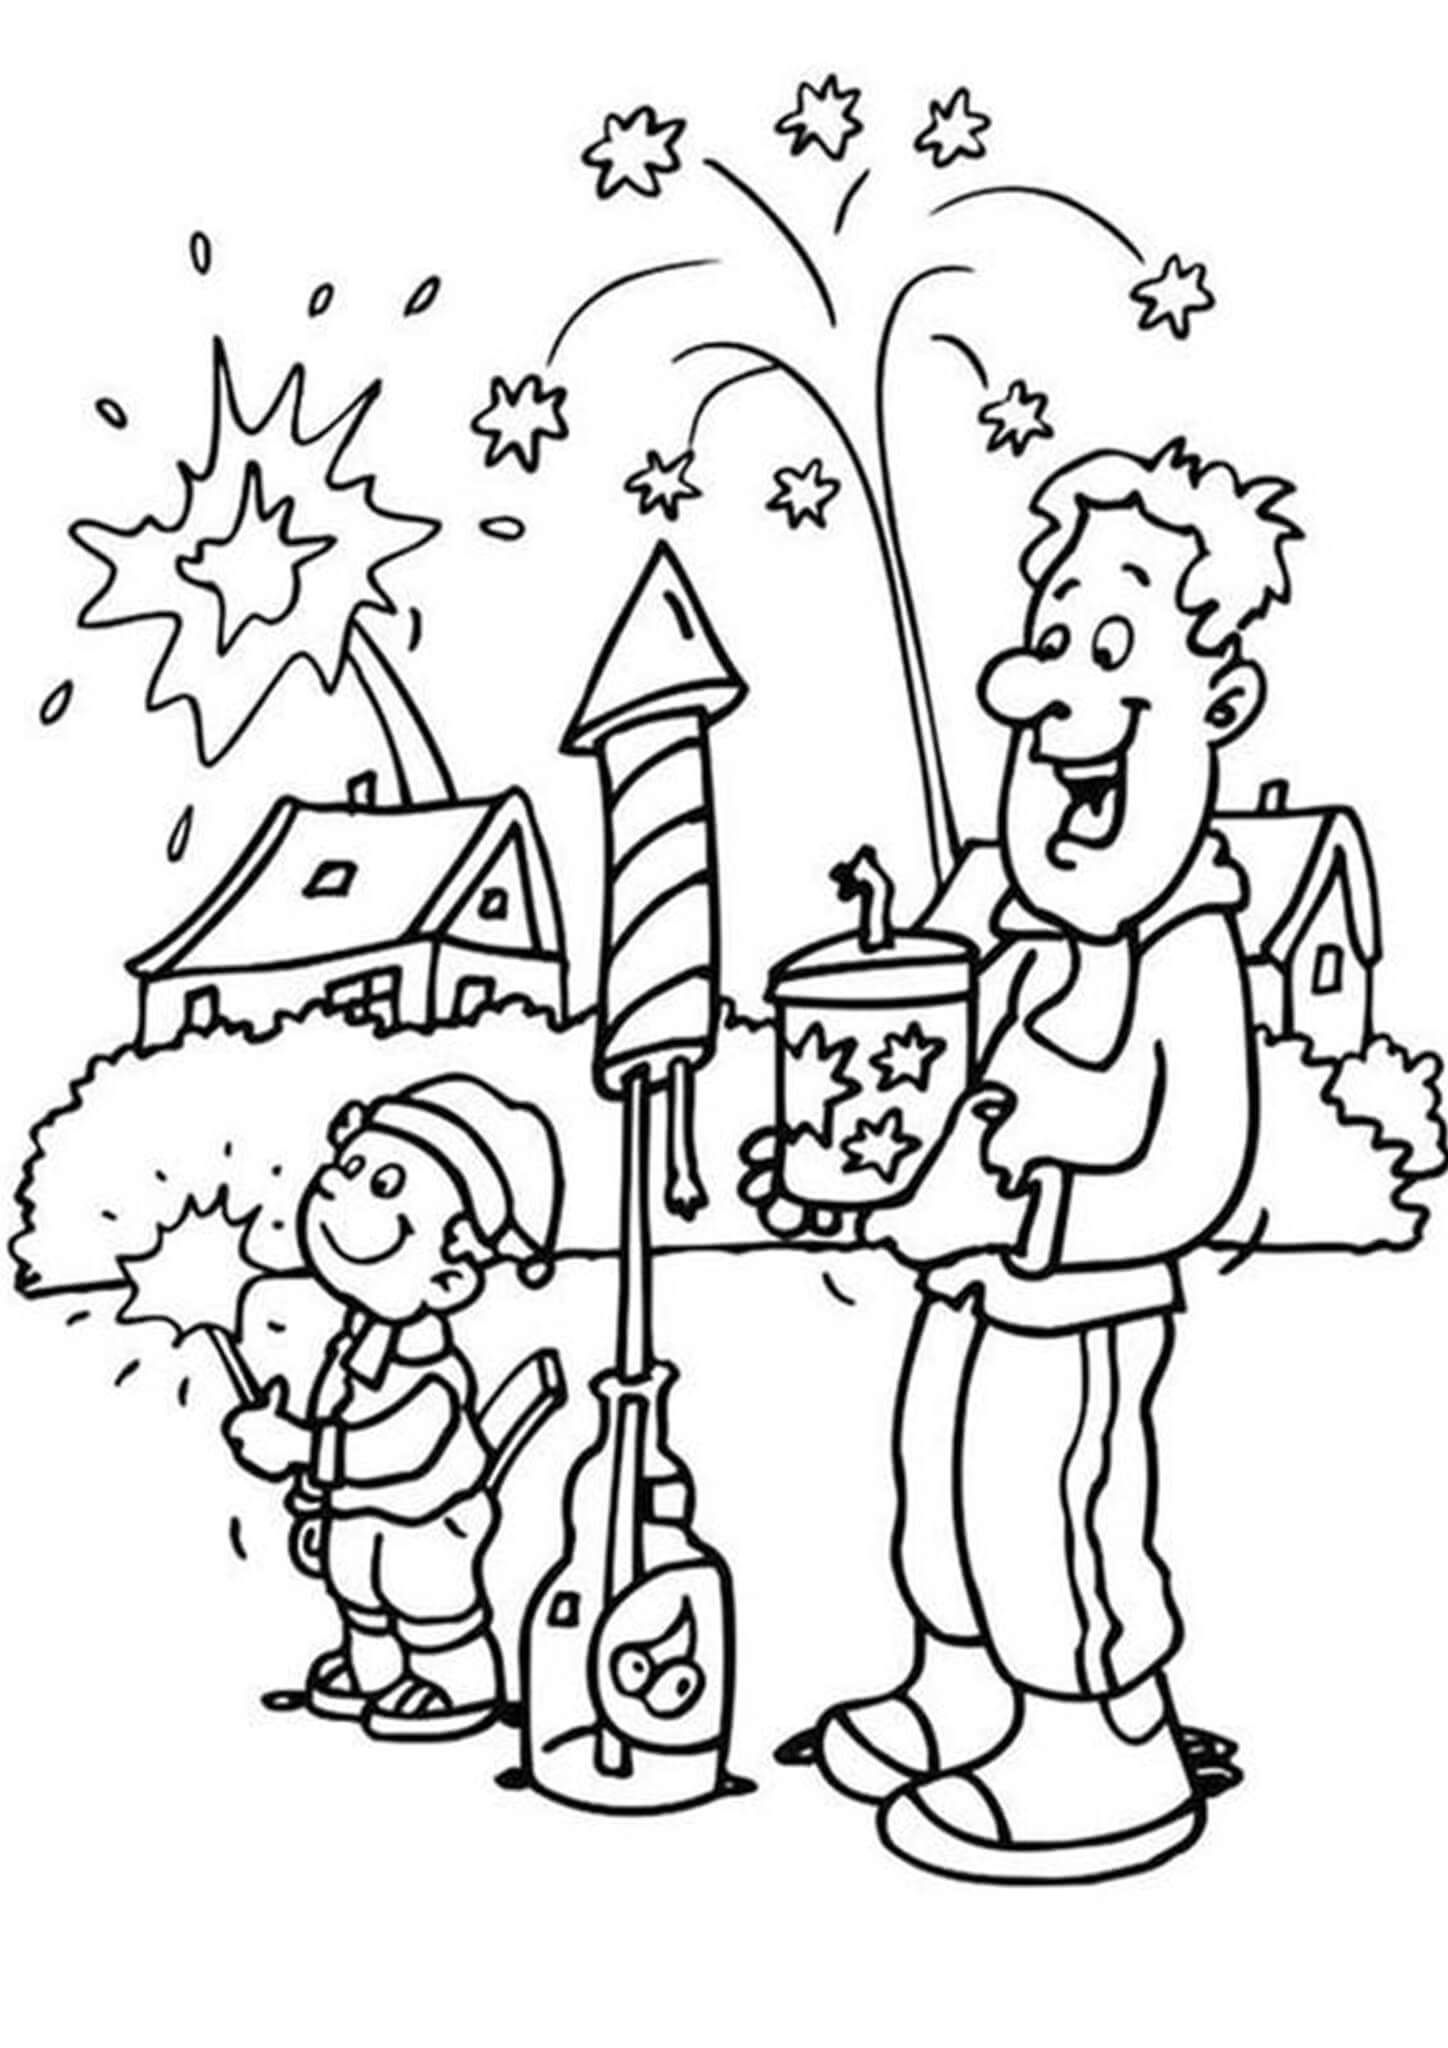 Free Easy To Print Happy New Year Coloring Pages New Year Coloring Pages Coloring Pages Online Coloring Pages